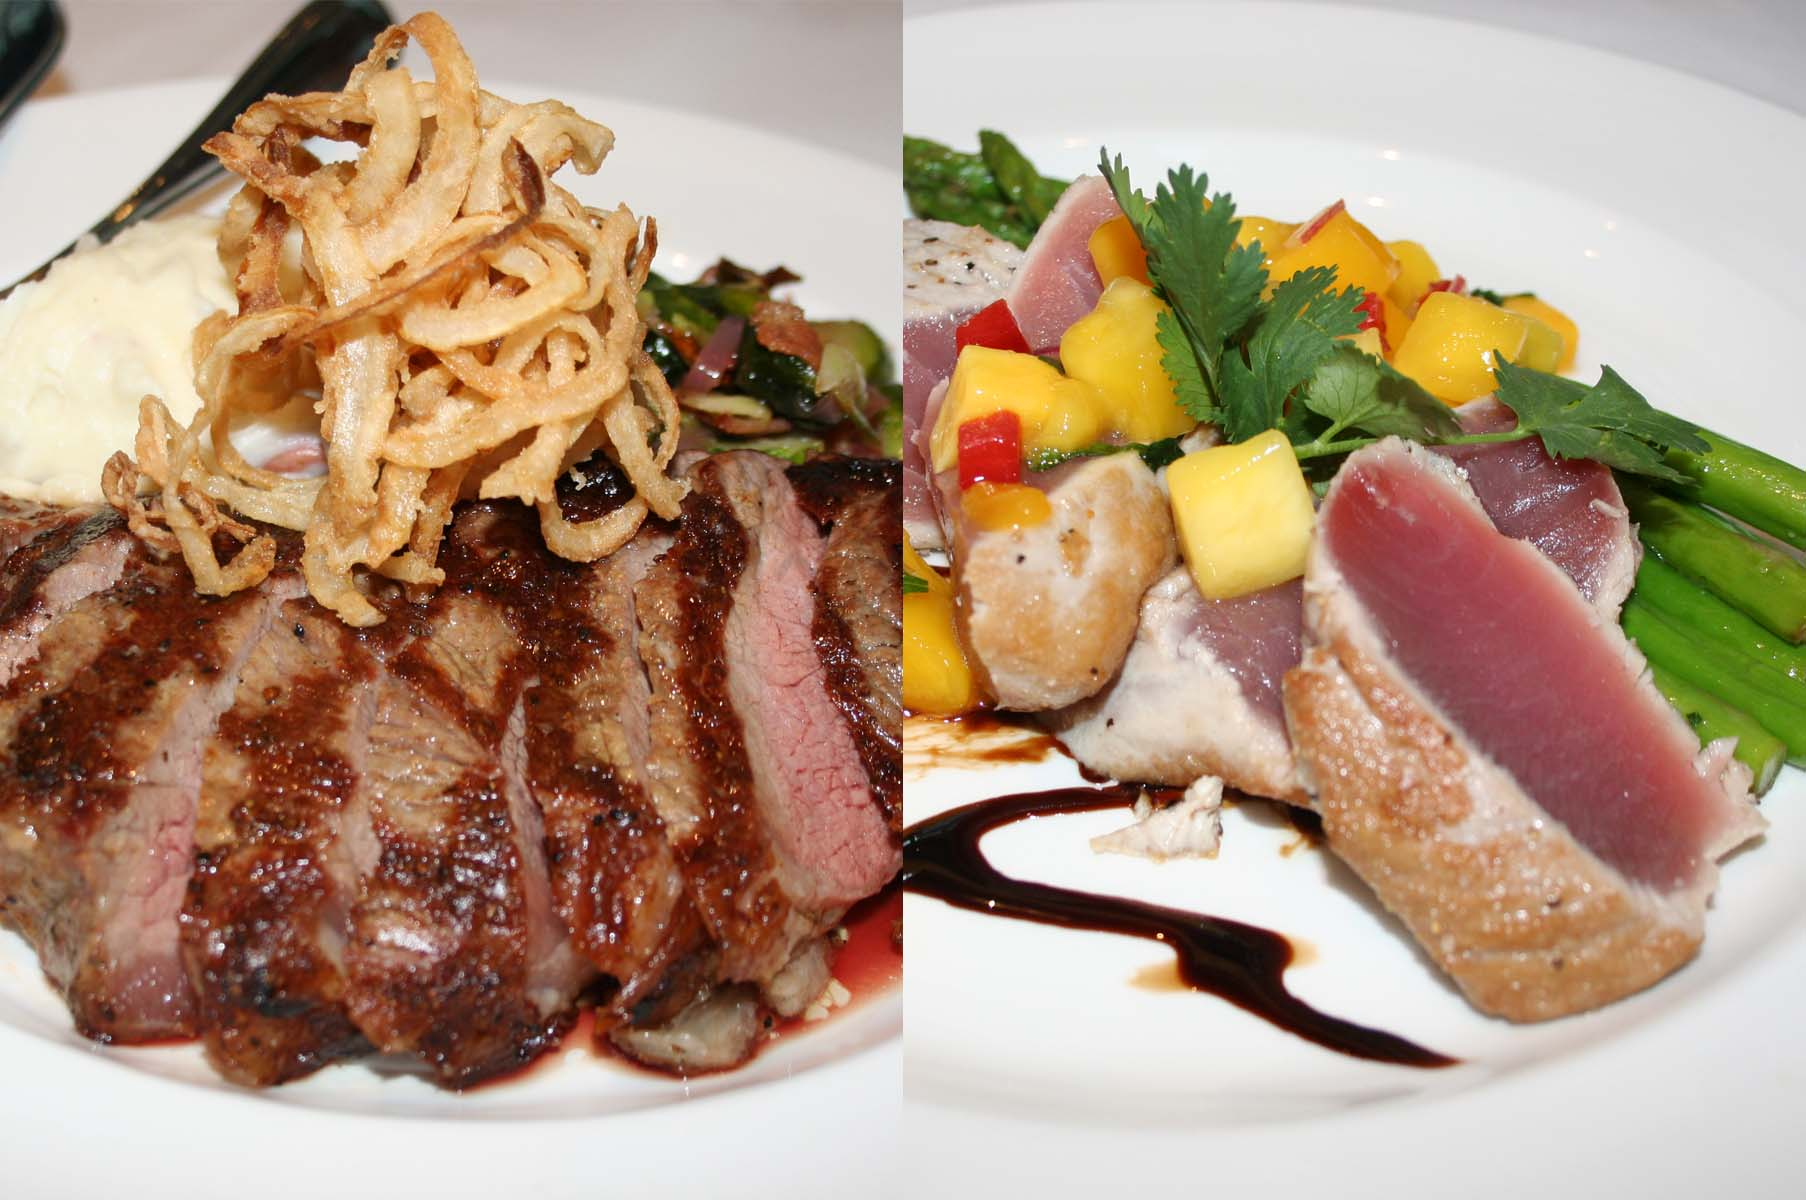 New entrees for Cafe Deluxe West End include the 14-ounce New York strip with Brussells sprouts and horseradish mashed potatoes (left) and the seared ahi tuna with mango salsa and asparagus. (Photos: Mark Heckathorn/DC on Heels)